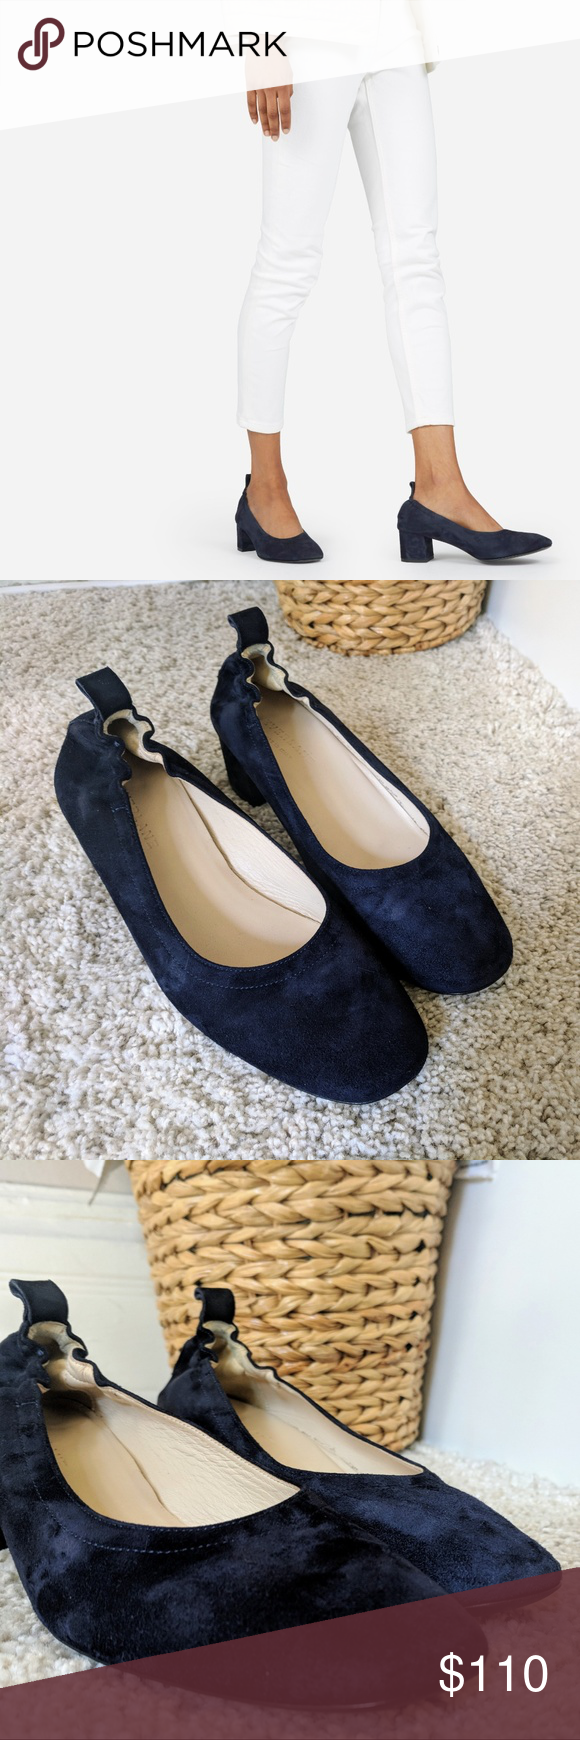 014f5e4acb2 Everlane Day Heel in Navy Suede, size 7 EUC, worn a few times but ...